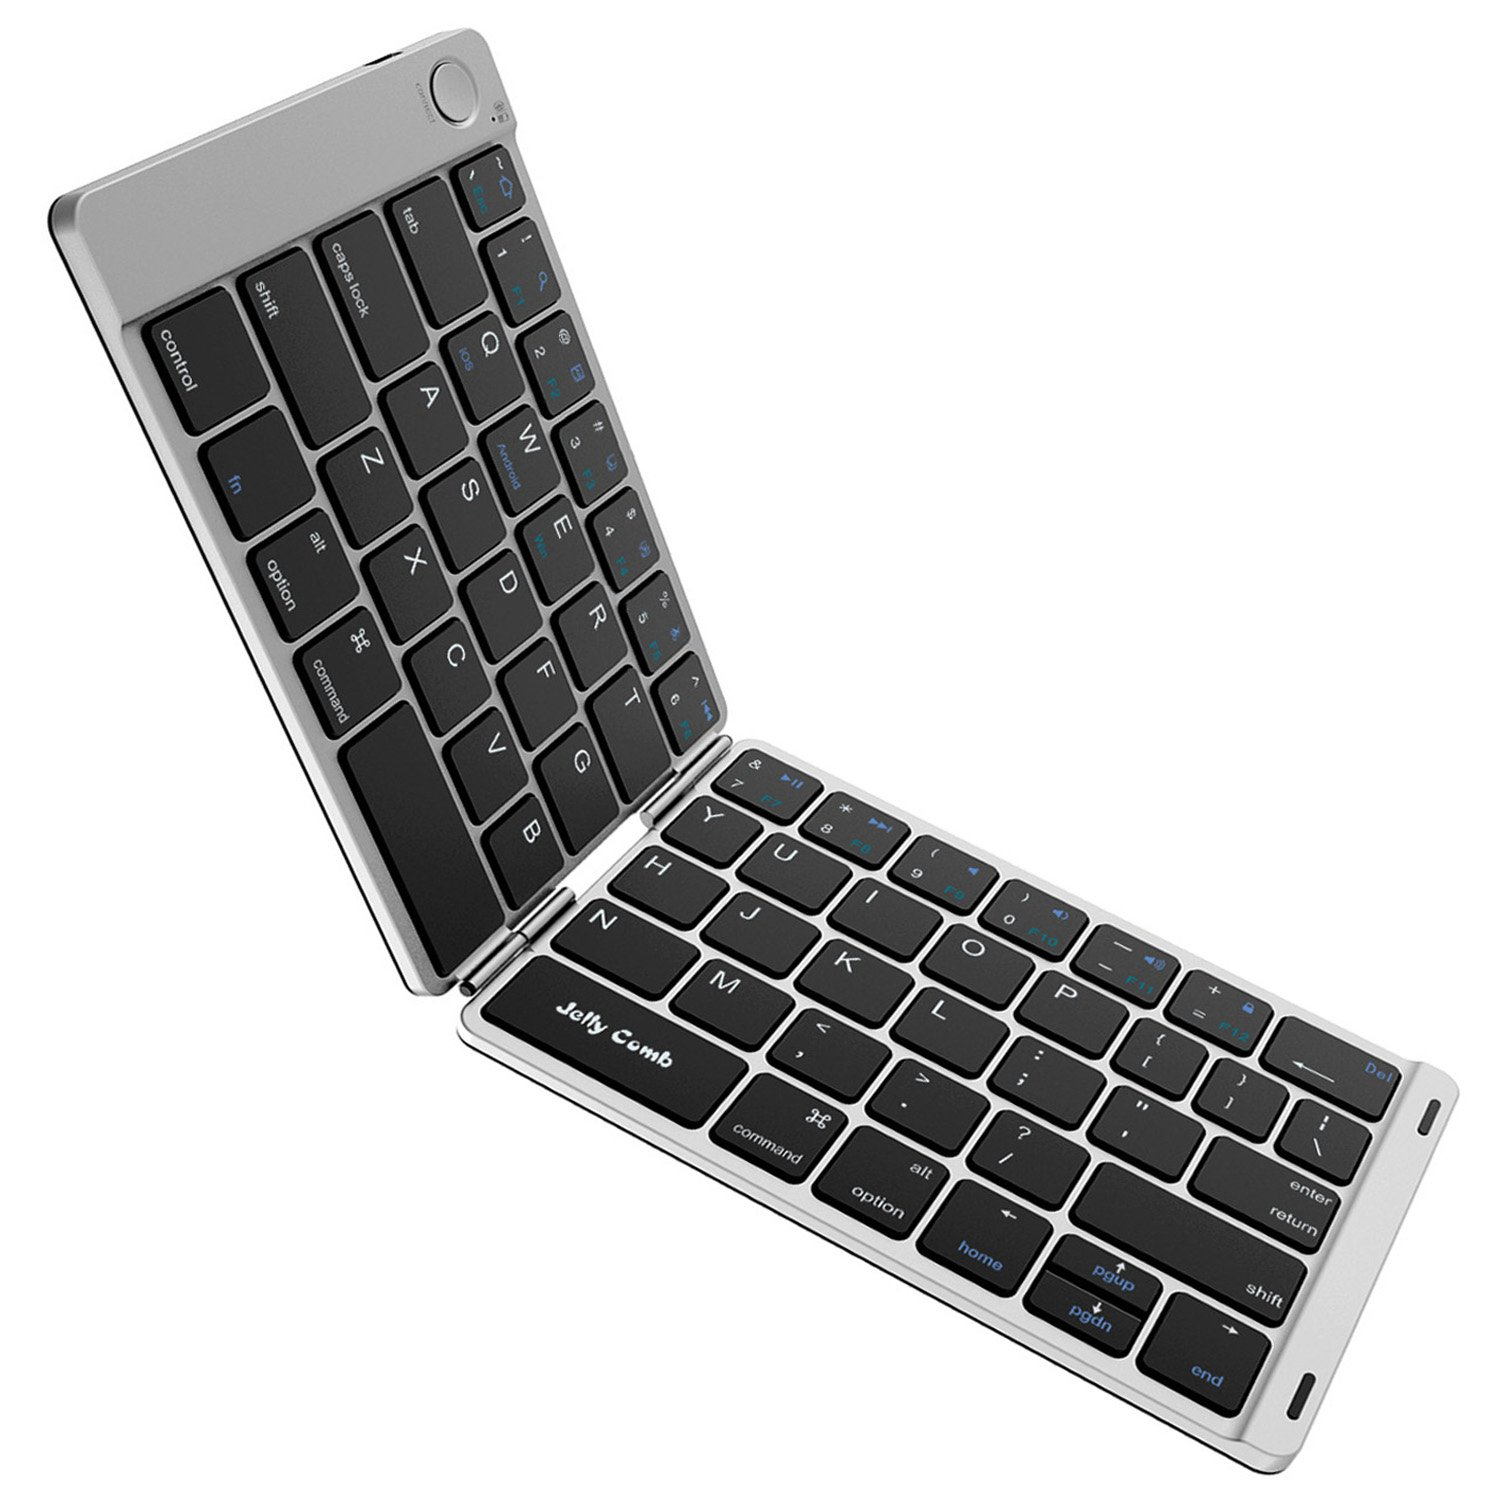 Foldable Bluetooth Keyboard, Jelly Comb B047 Ultra Slim Folding Mini Bluetooth Keyboard Rechargeable PU Leather Pocket Size Keyboard for iPad Android Smartphone Windows-(Black and Silver)